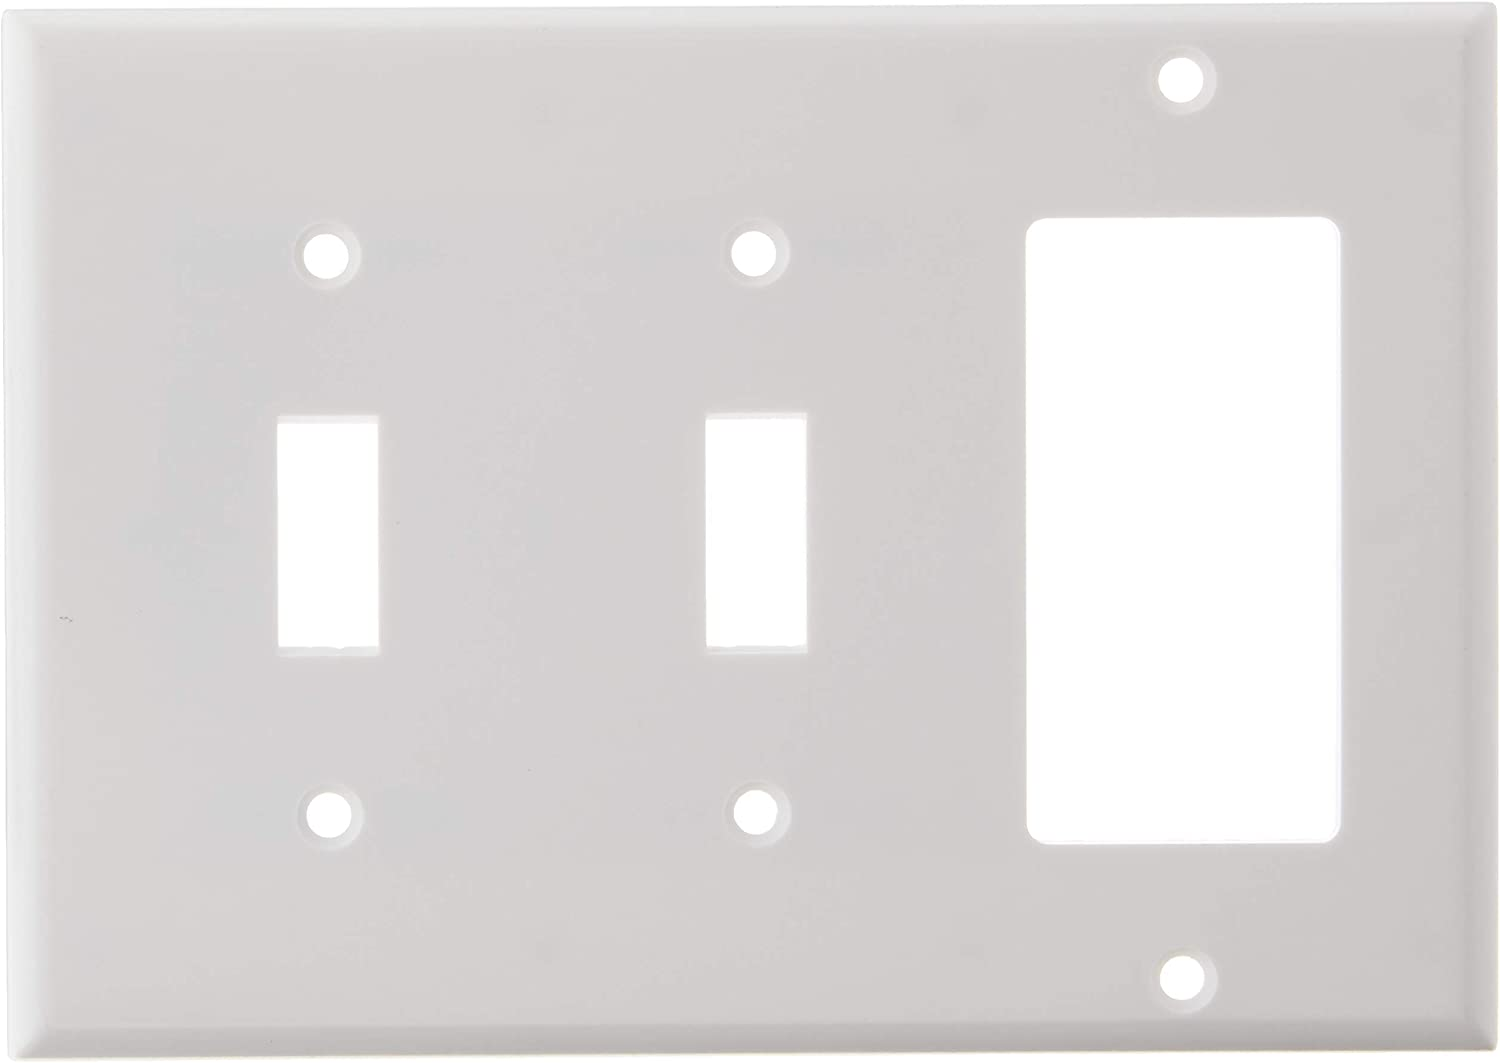 Leviton 80421 W 2 Toggle 1 Decora Gfci Device Combination Wallplate Switch And Outlet Plates